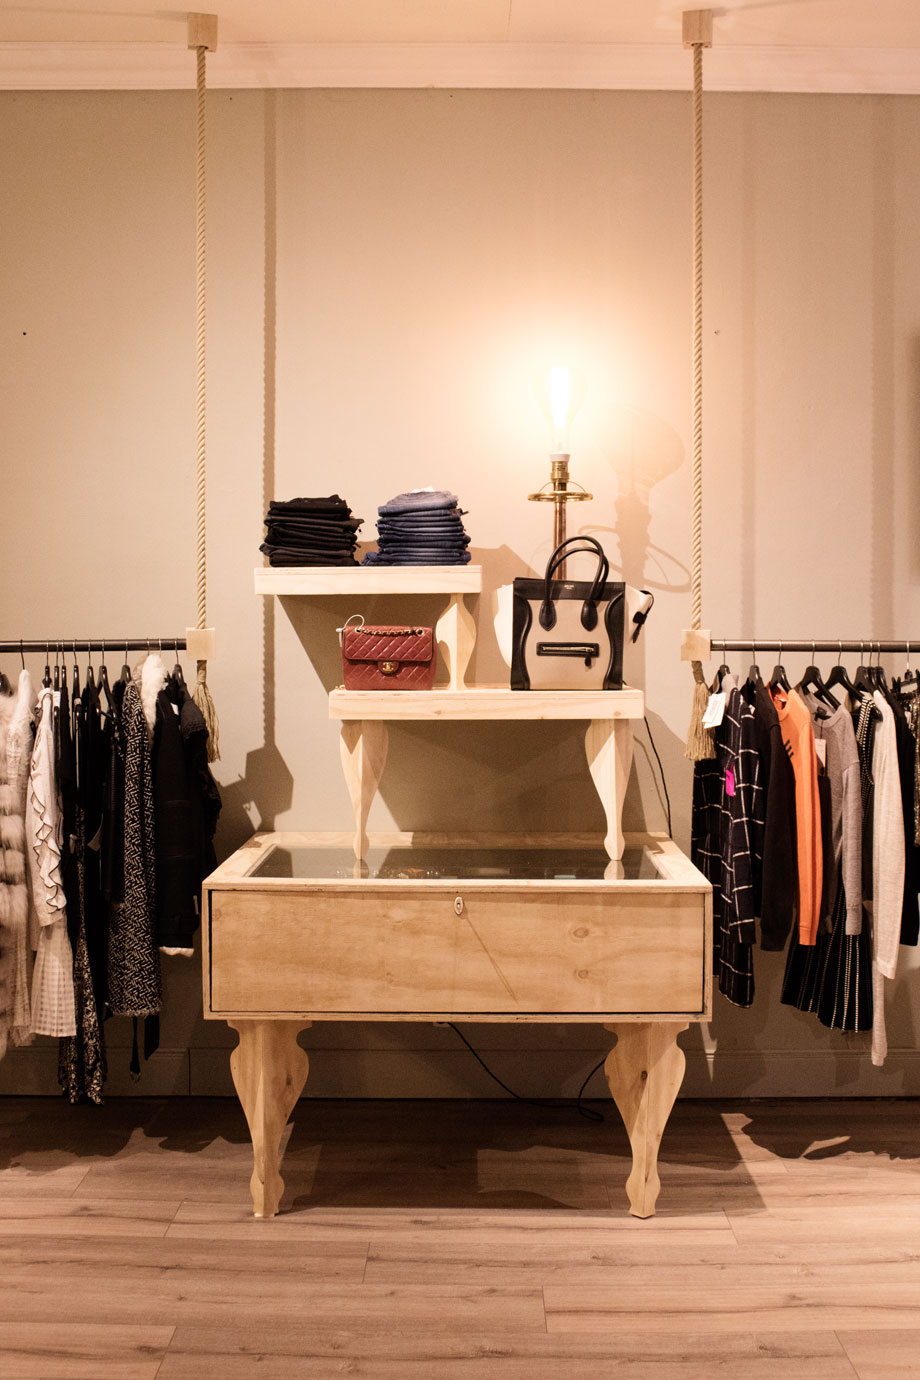 The Pop up Boutique consists of a main